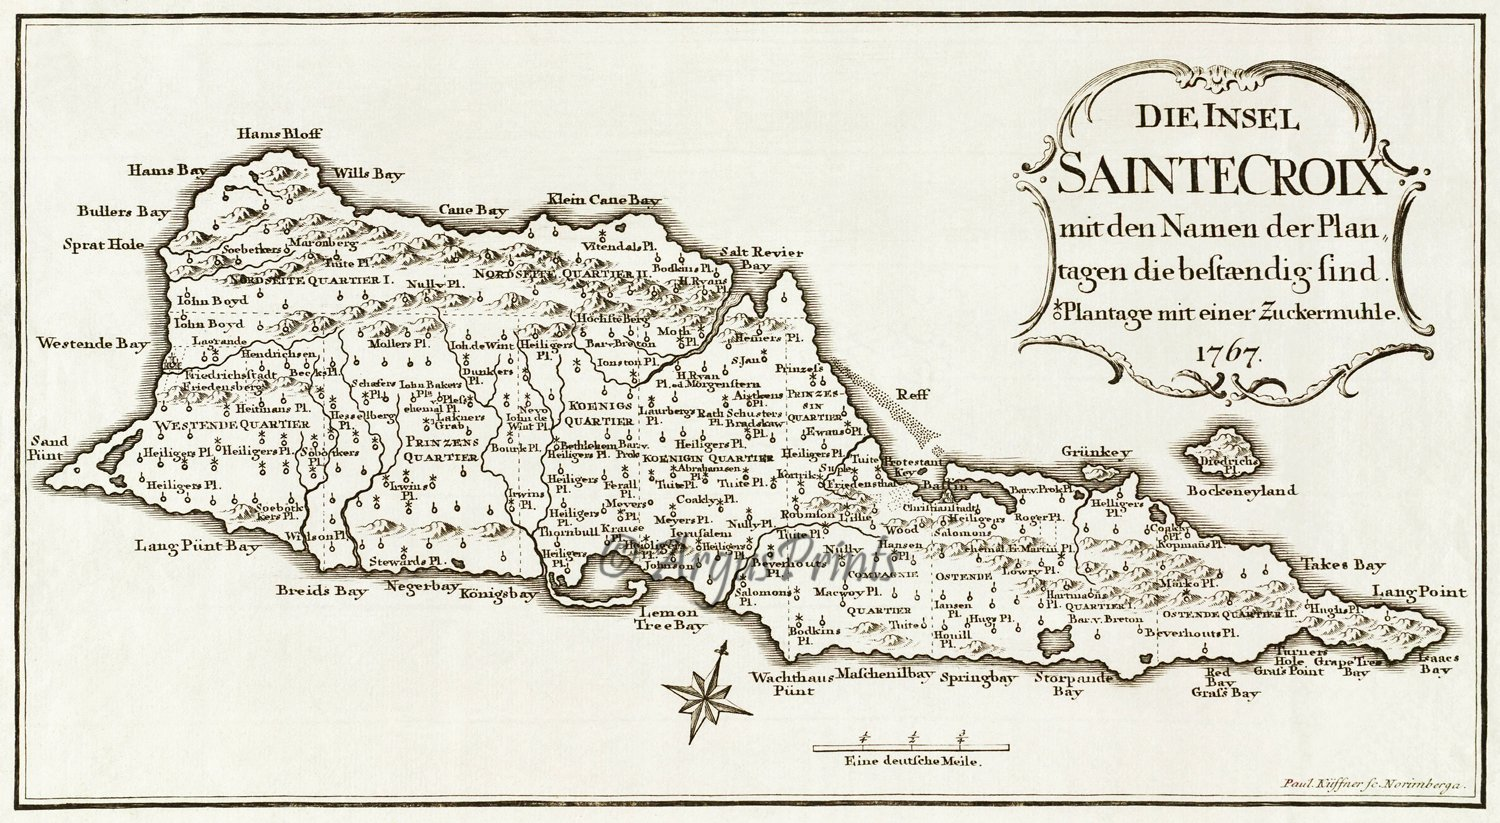 St croix danish west indies us virgin islands 1767 plantation st croix danish west indies us virgin islands 1767 plantation caribbean map by paul kussner sciox Image collections